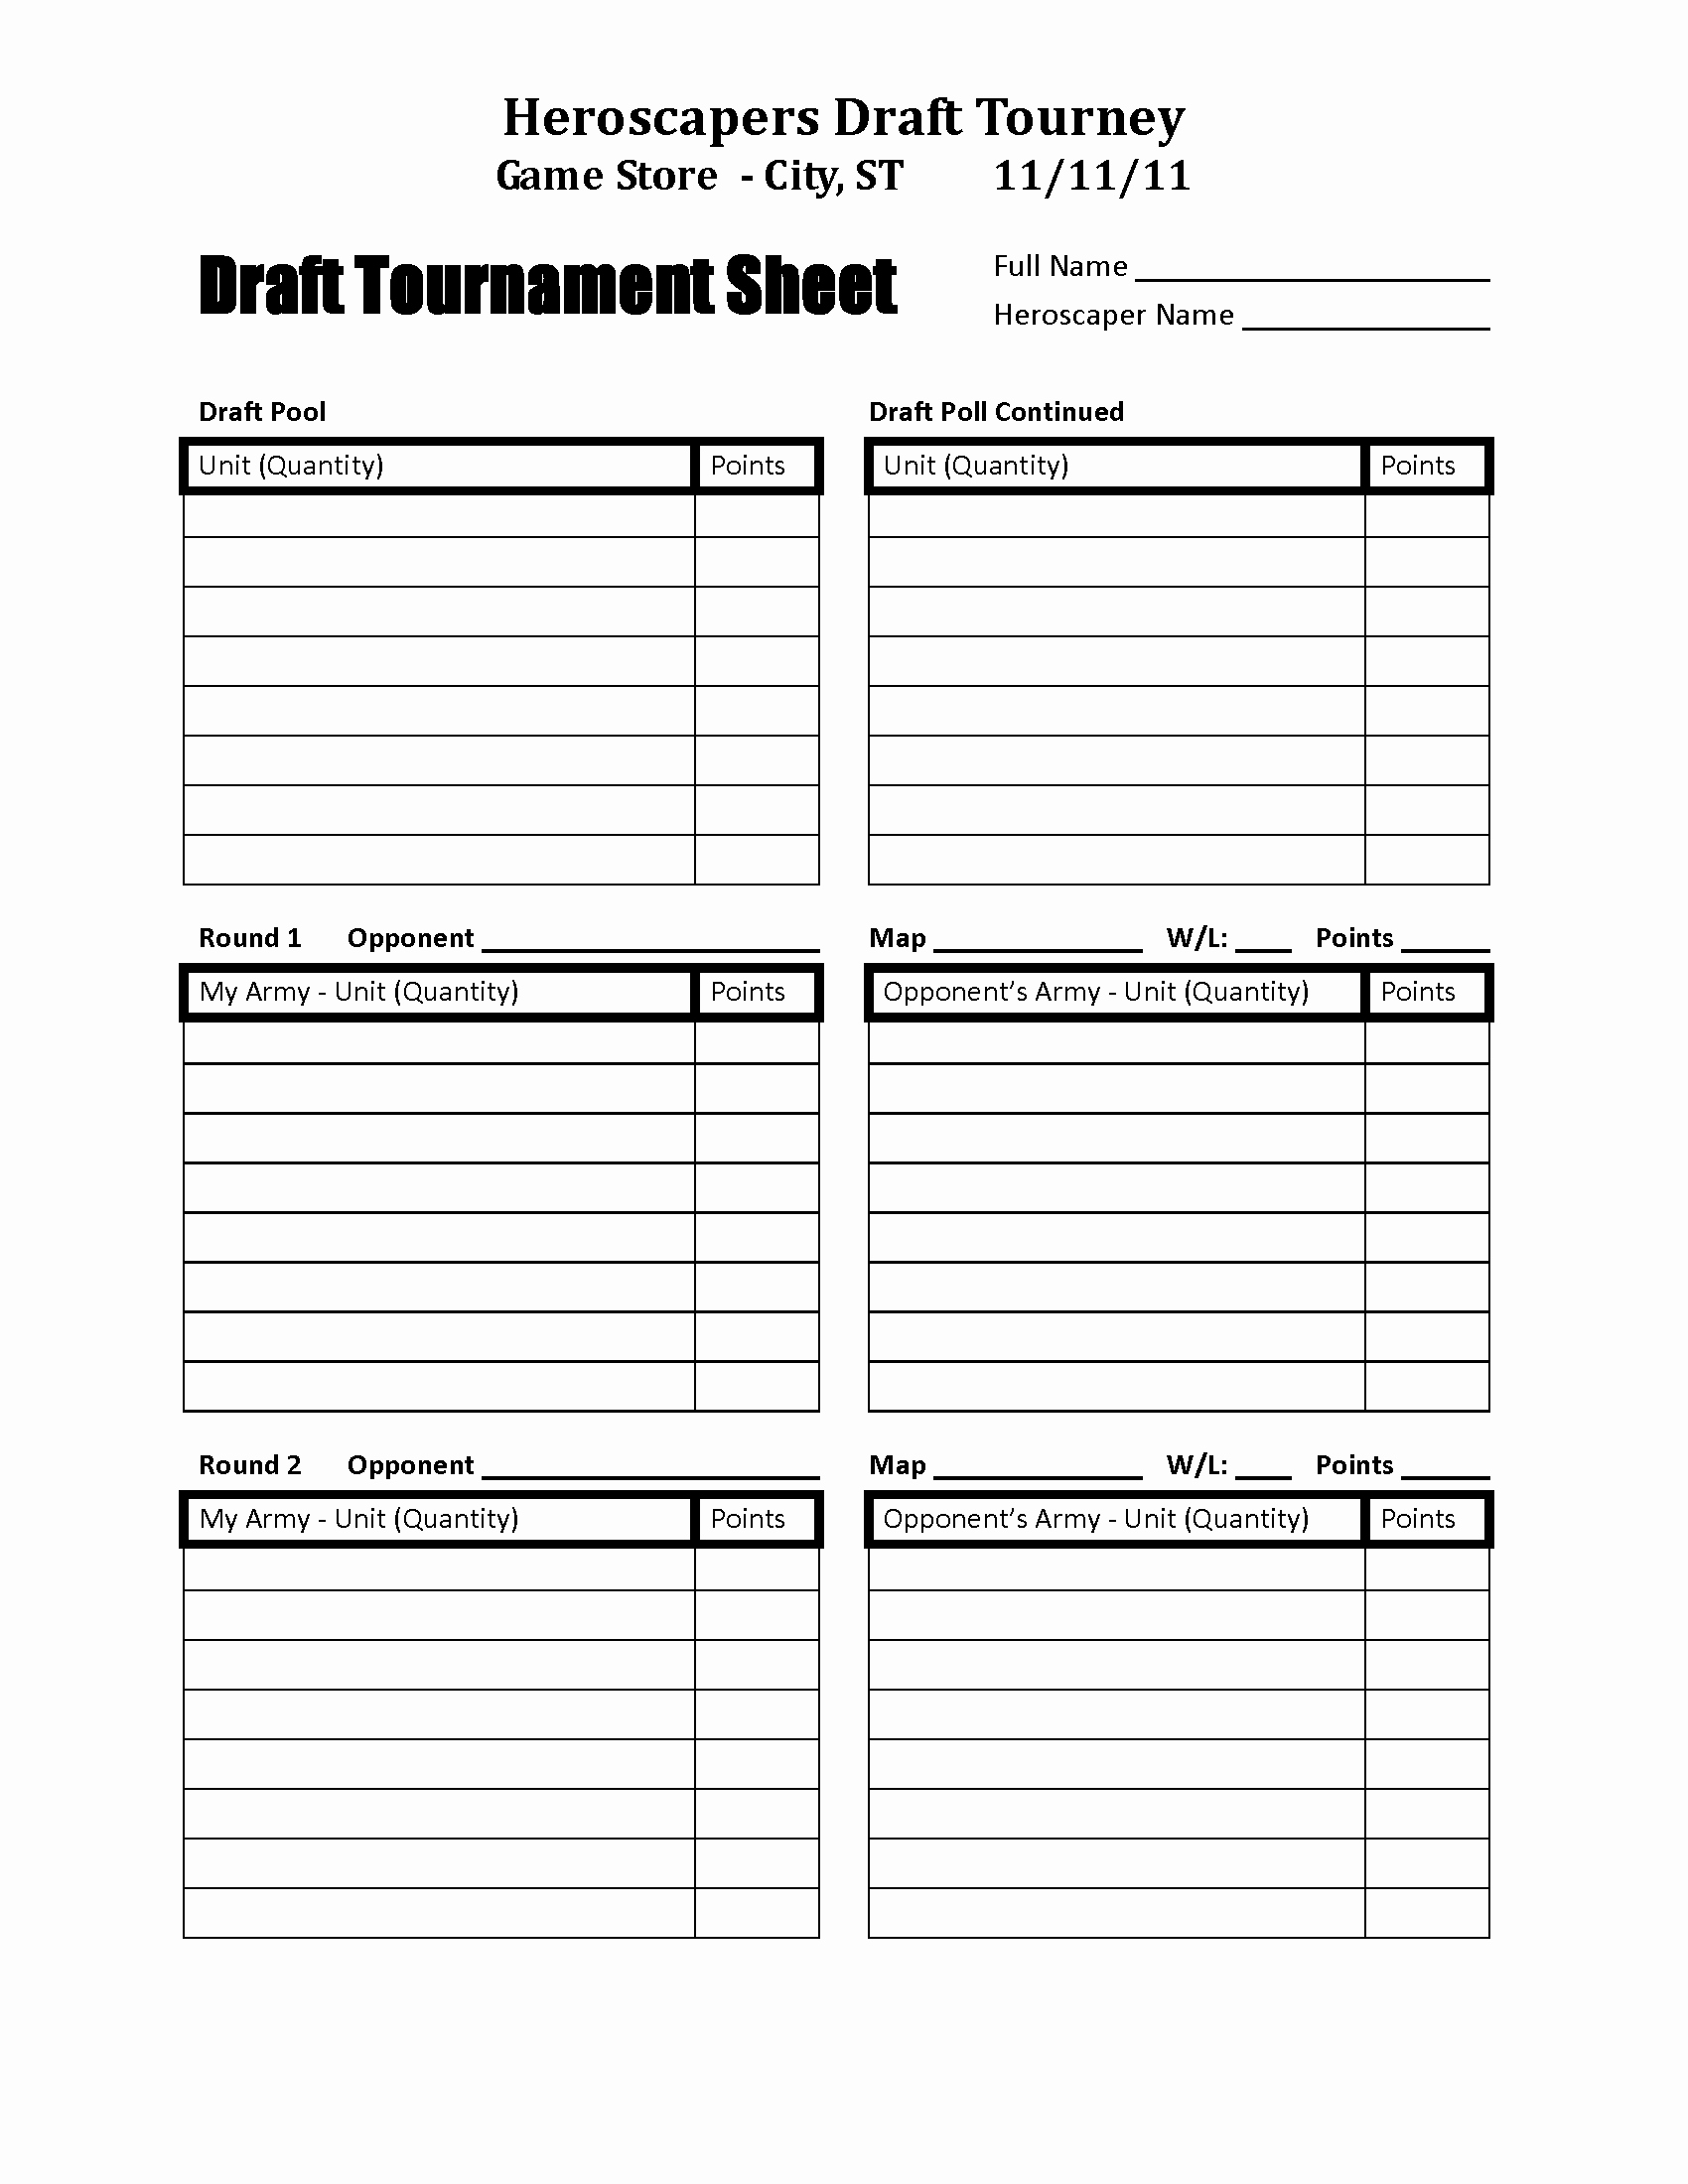 Fantasy Football Roster Sheet Blank Awesome Heroscapers Downloads Draft tournament Sheet